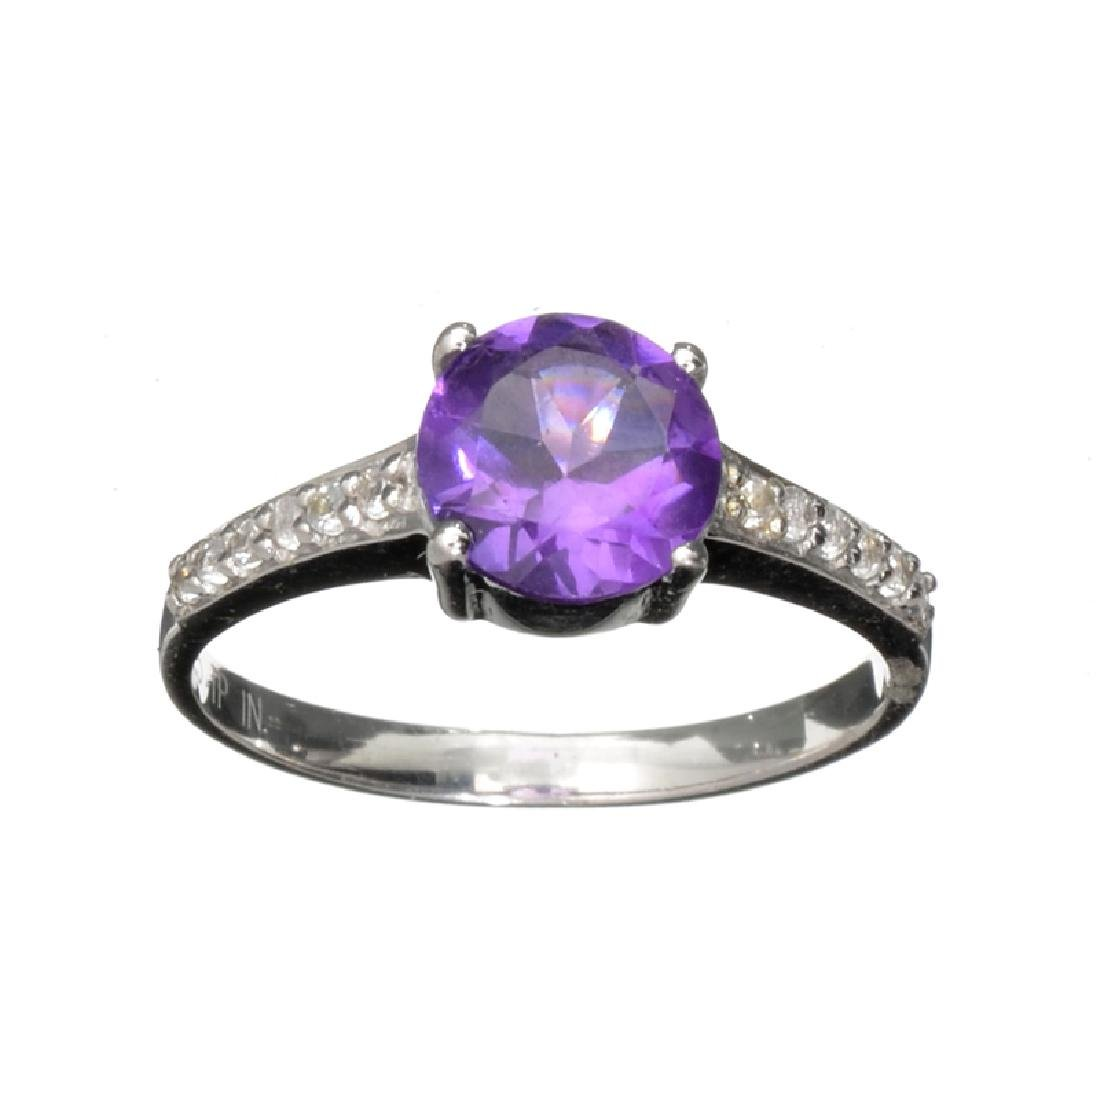 APP: 0.7k Fine Jewelry 1.040CT Round Cut Purple